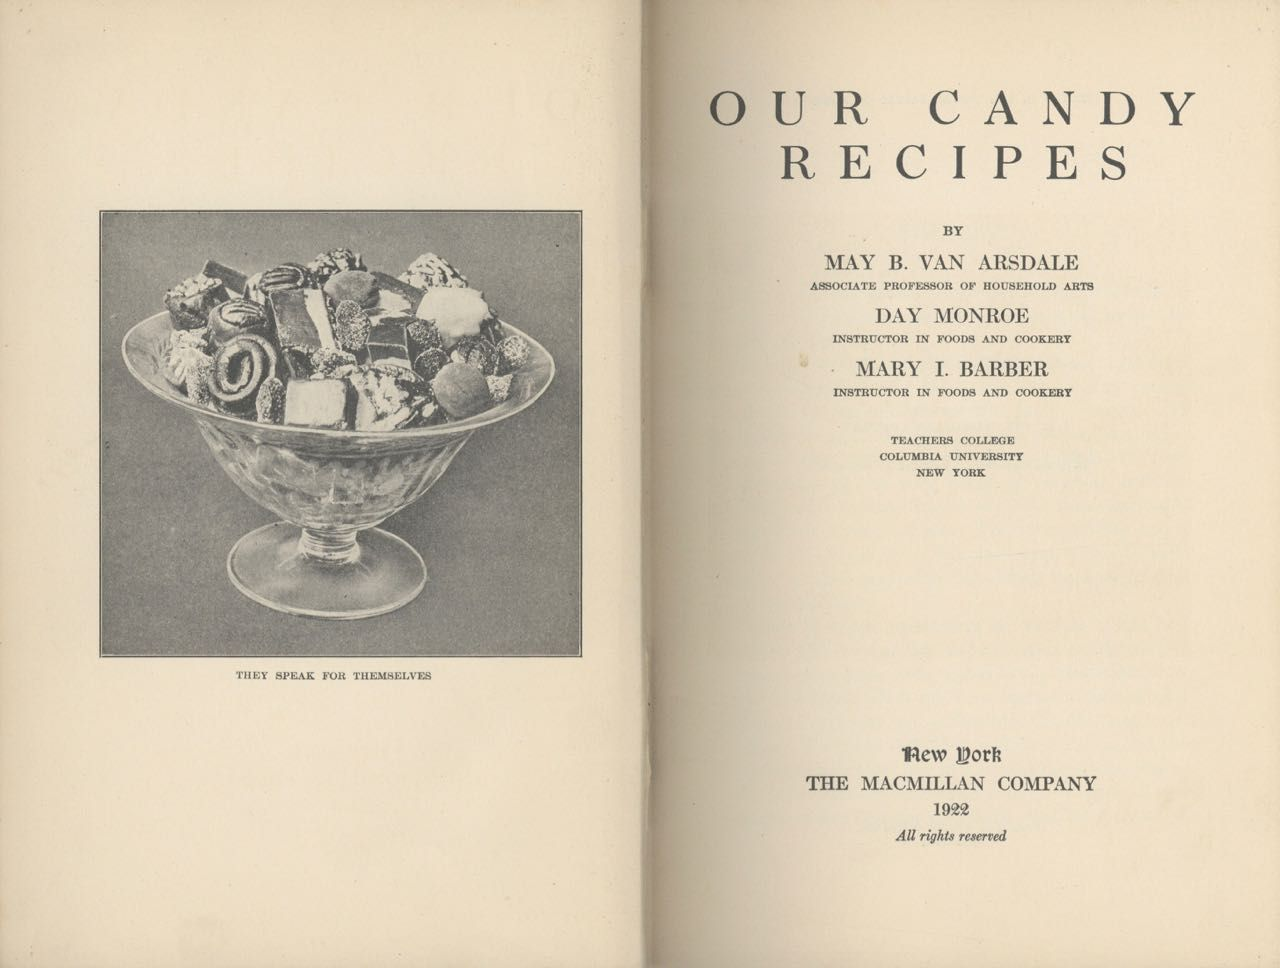 Our Candy Recipes.